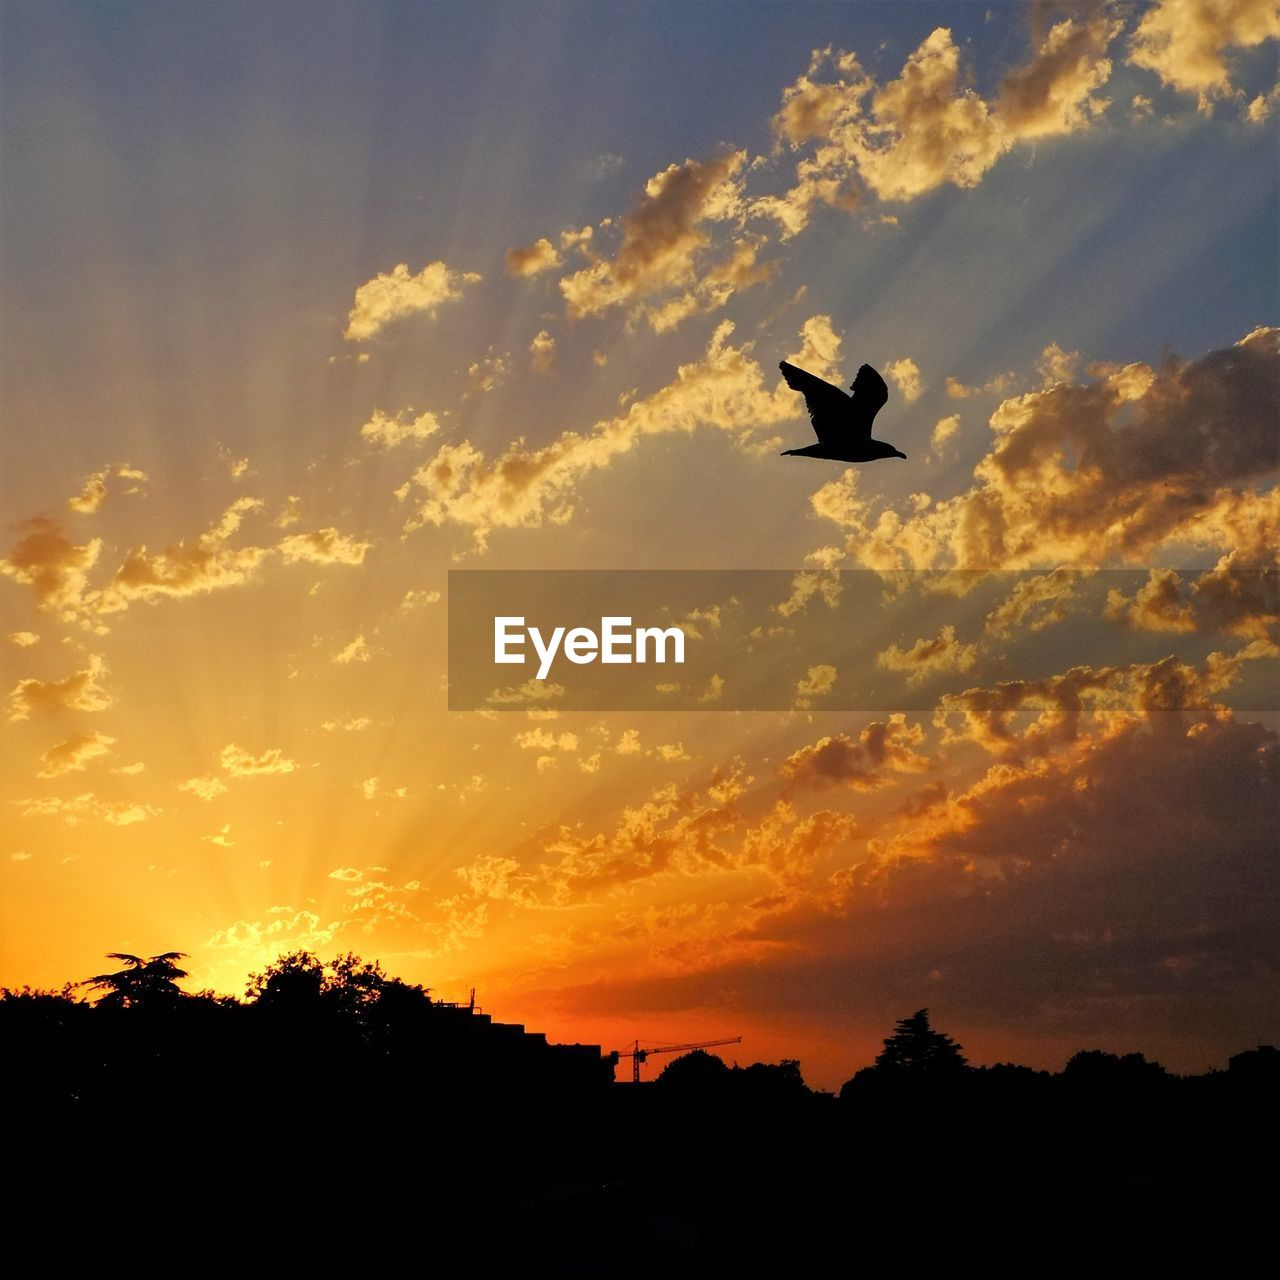 sunset, silhouette, sky, vertebrate, one animal, animal themes, animal, cloud - sky, orange color, animals in the wild, flying, bird, animal wildlife, beauty in nature, tree, low angle view, scenics - nature, no people, plant, nature, outdoors